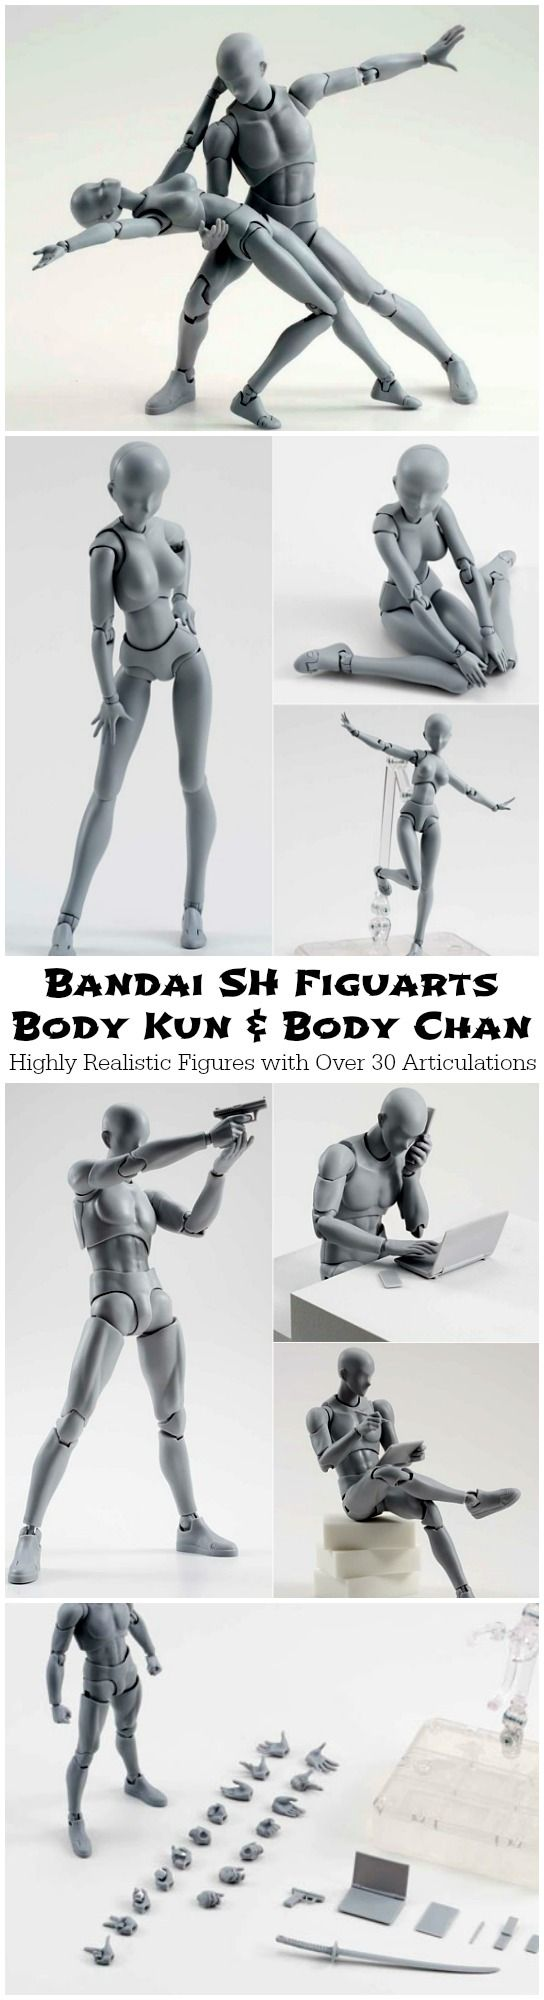 SH Figuarts Body is a highly realistic, articulated figure created with the artist in mind. Over 30 articulated joints make it easy to create desired pose.